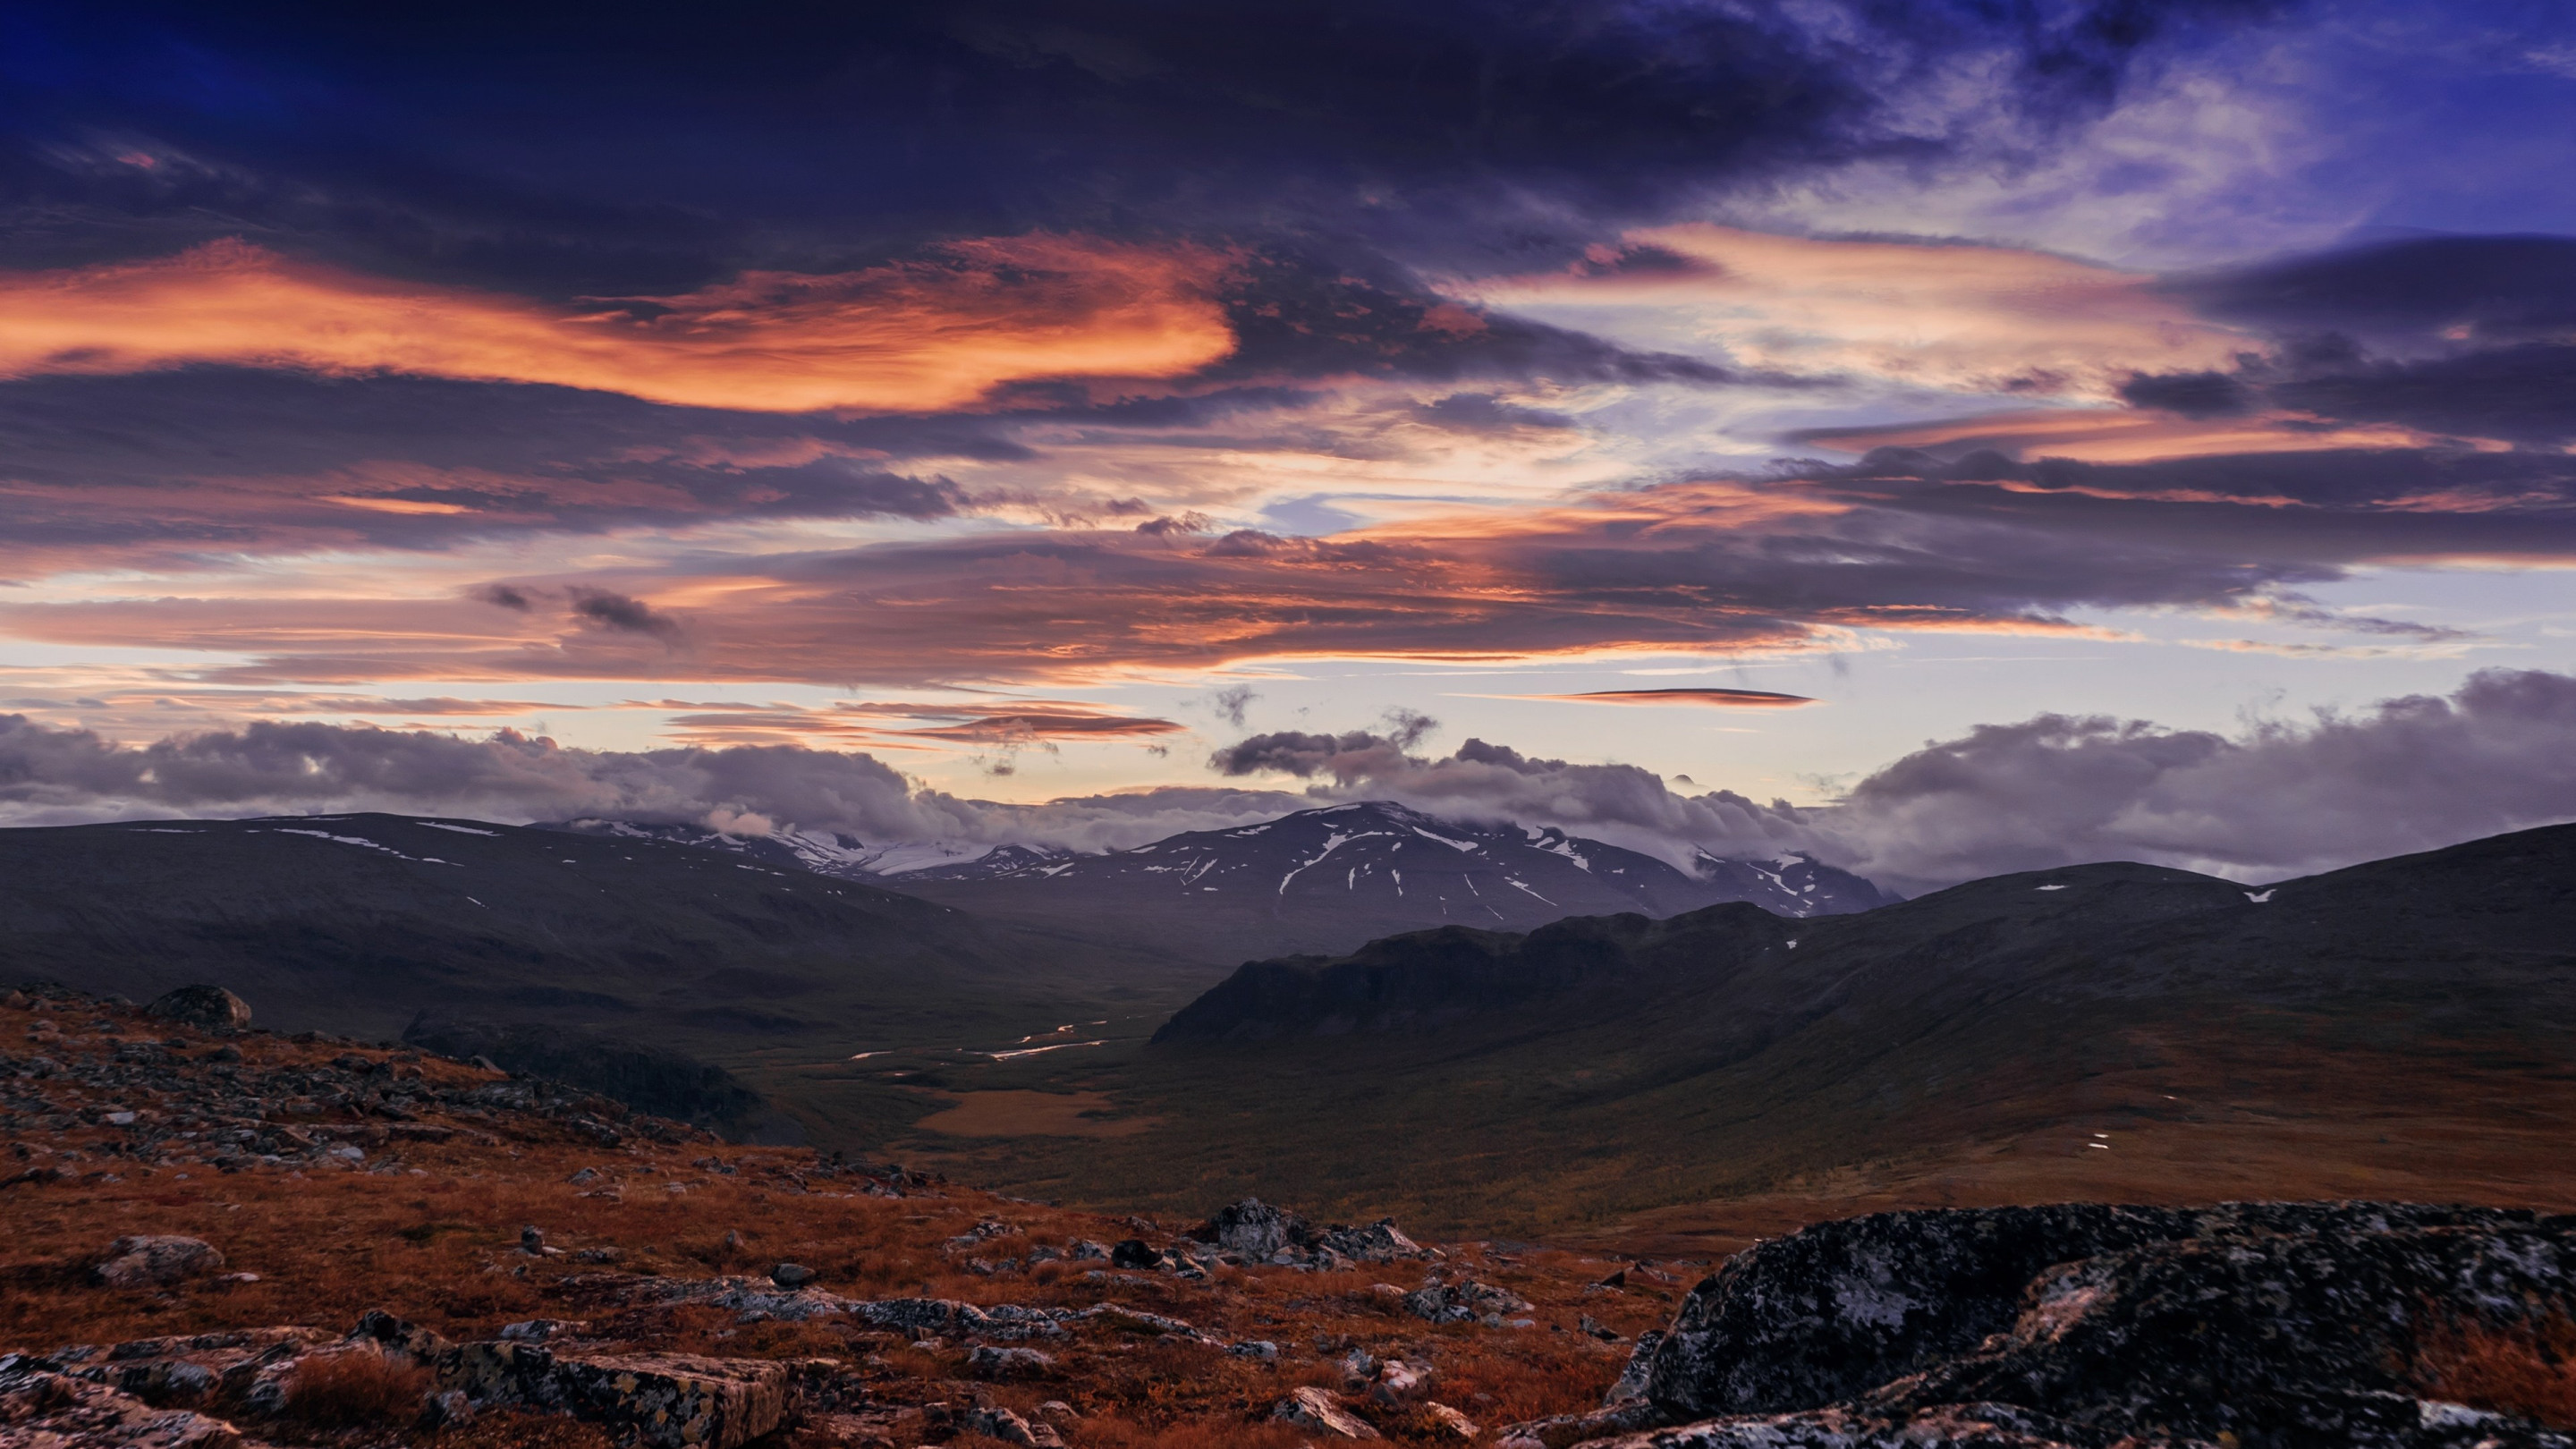 Sunset from Sarek National Park wallpaper 2880x1620